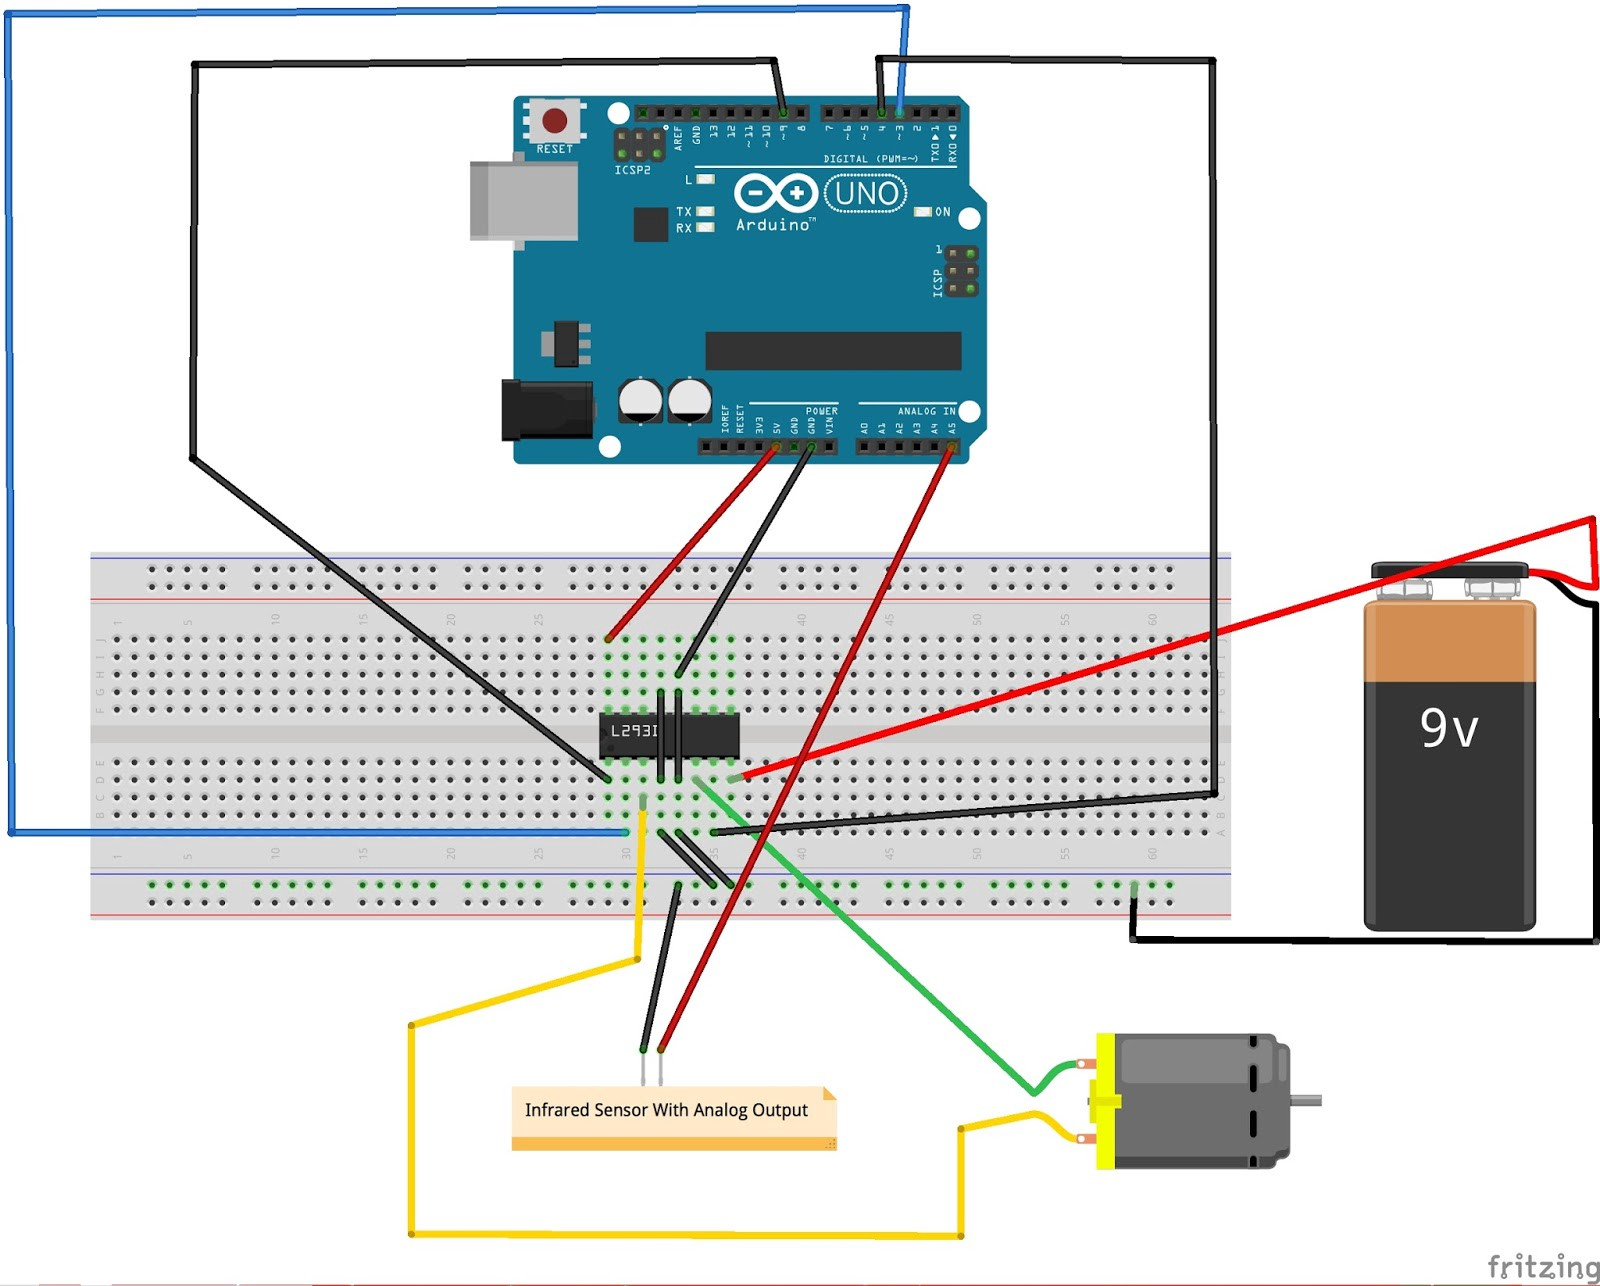 Infrared Based Circuits Dc Motor Control Using Arduino Uno And Ir Sensor Naga Surya Circuit For Controlling A With